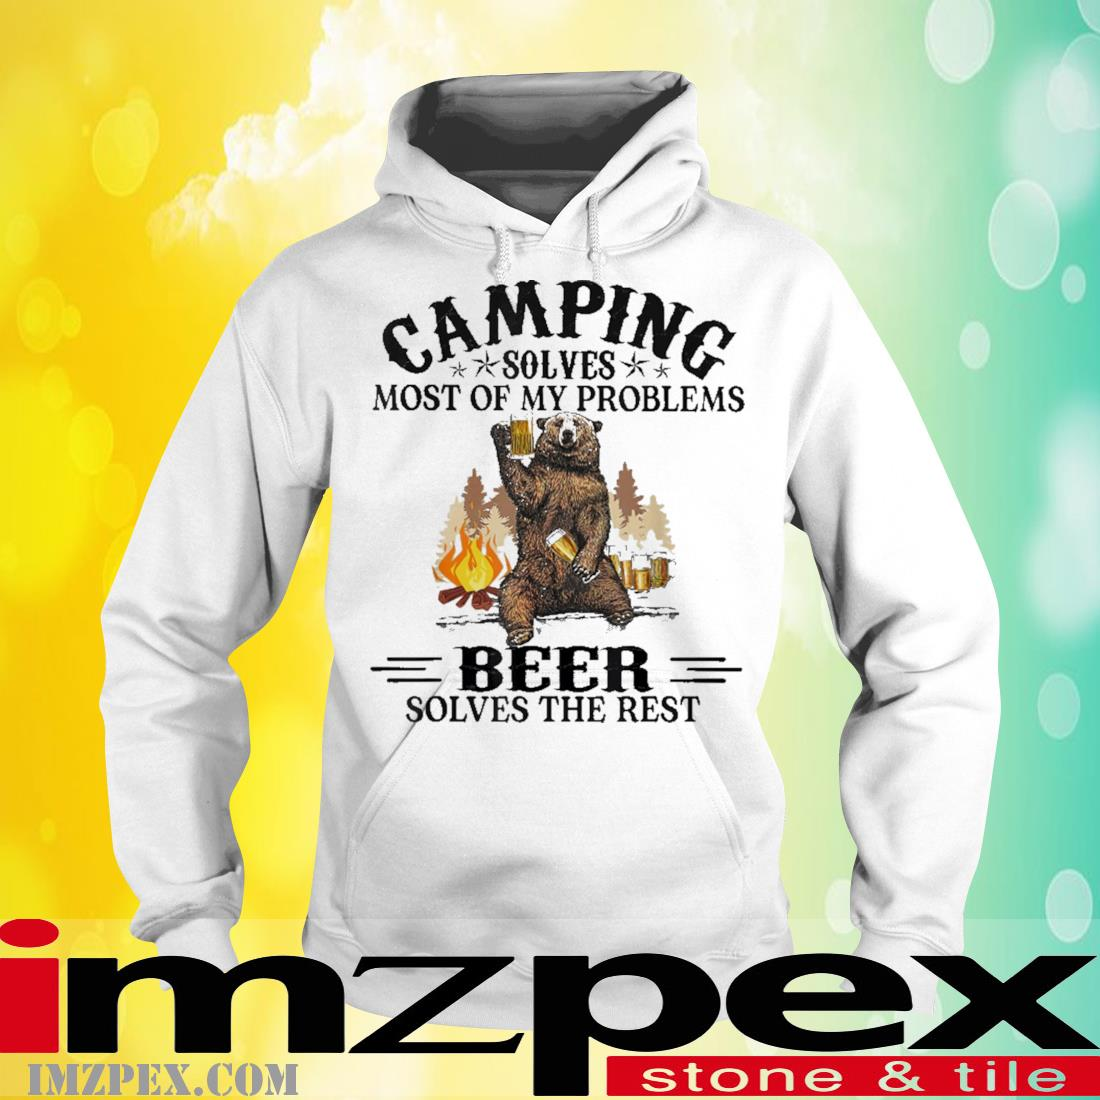 Bear Camping solves most of my problems Beer solves the rest hoodie